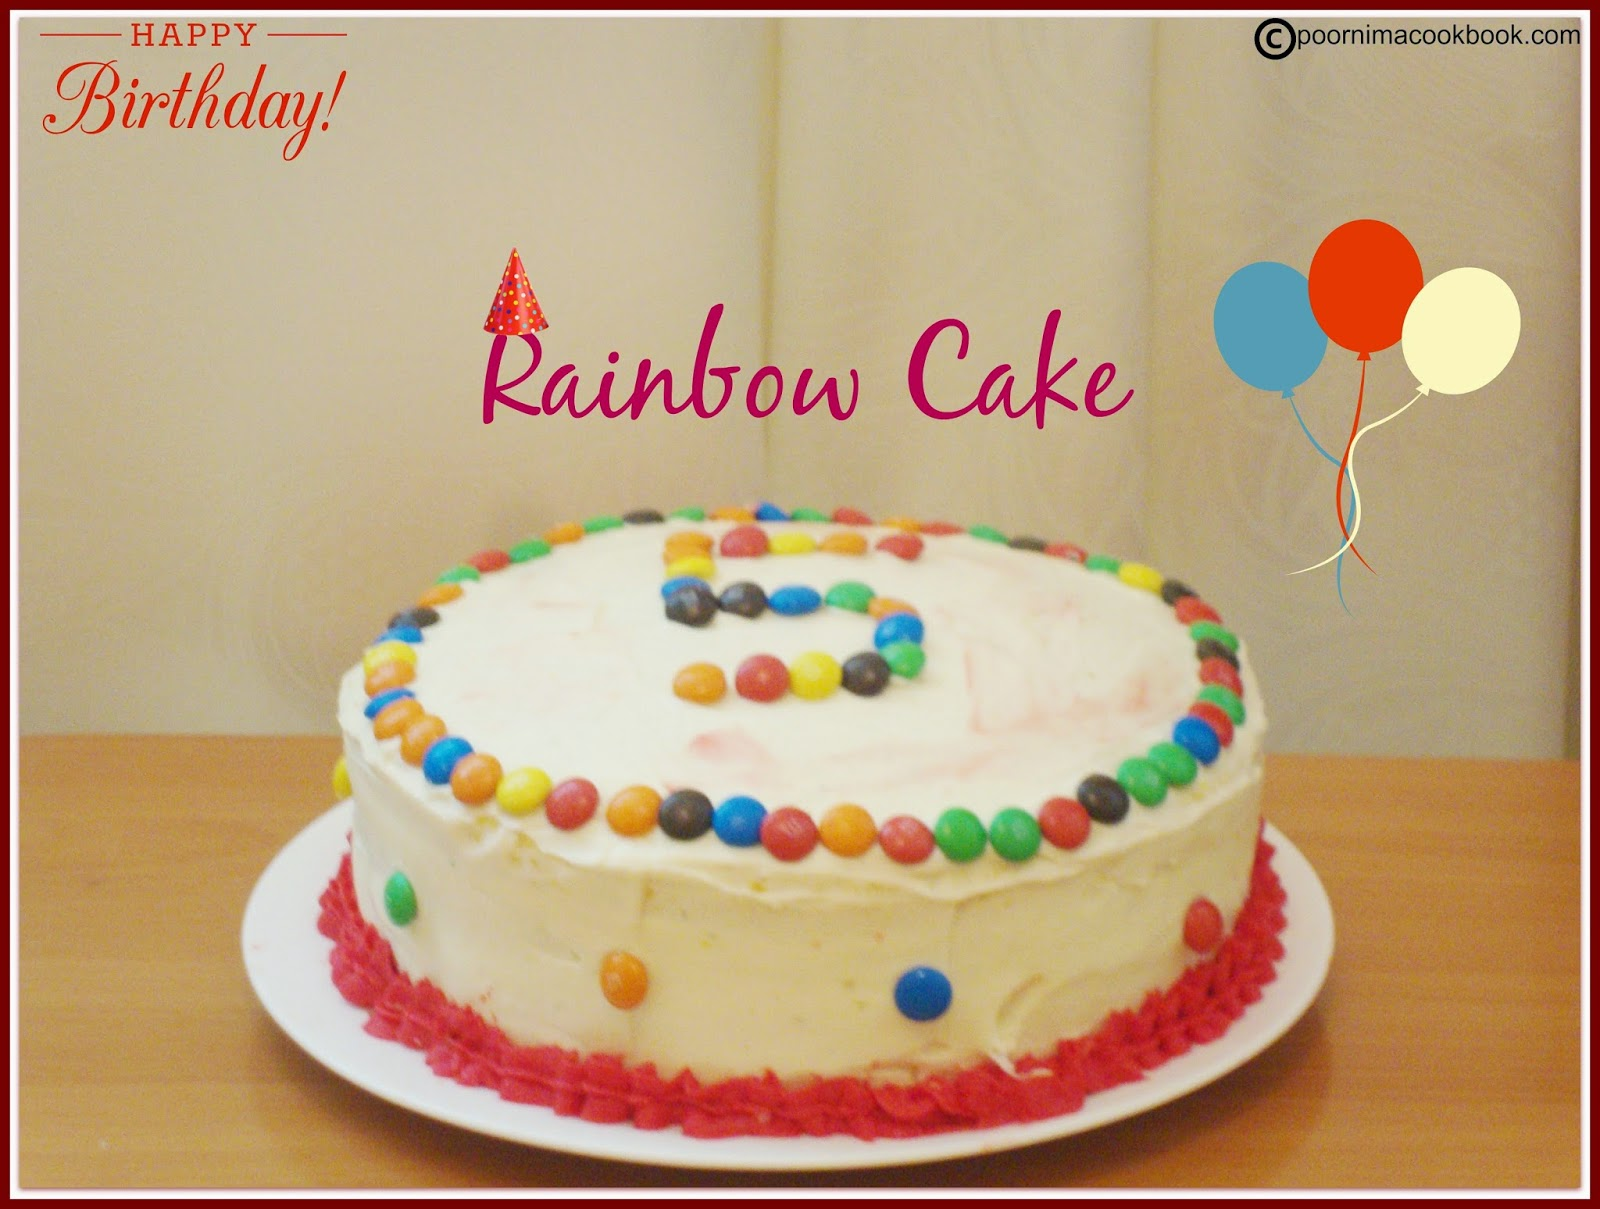 Poornima S Cook Book Rainbow Cake 4 Layer Cake Layered Rainbow